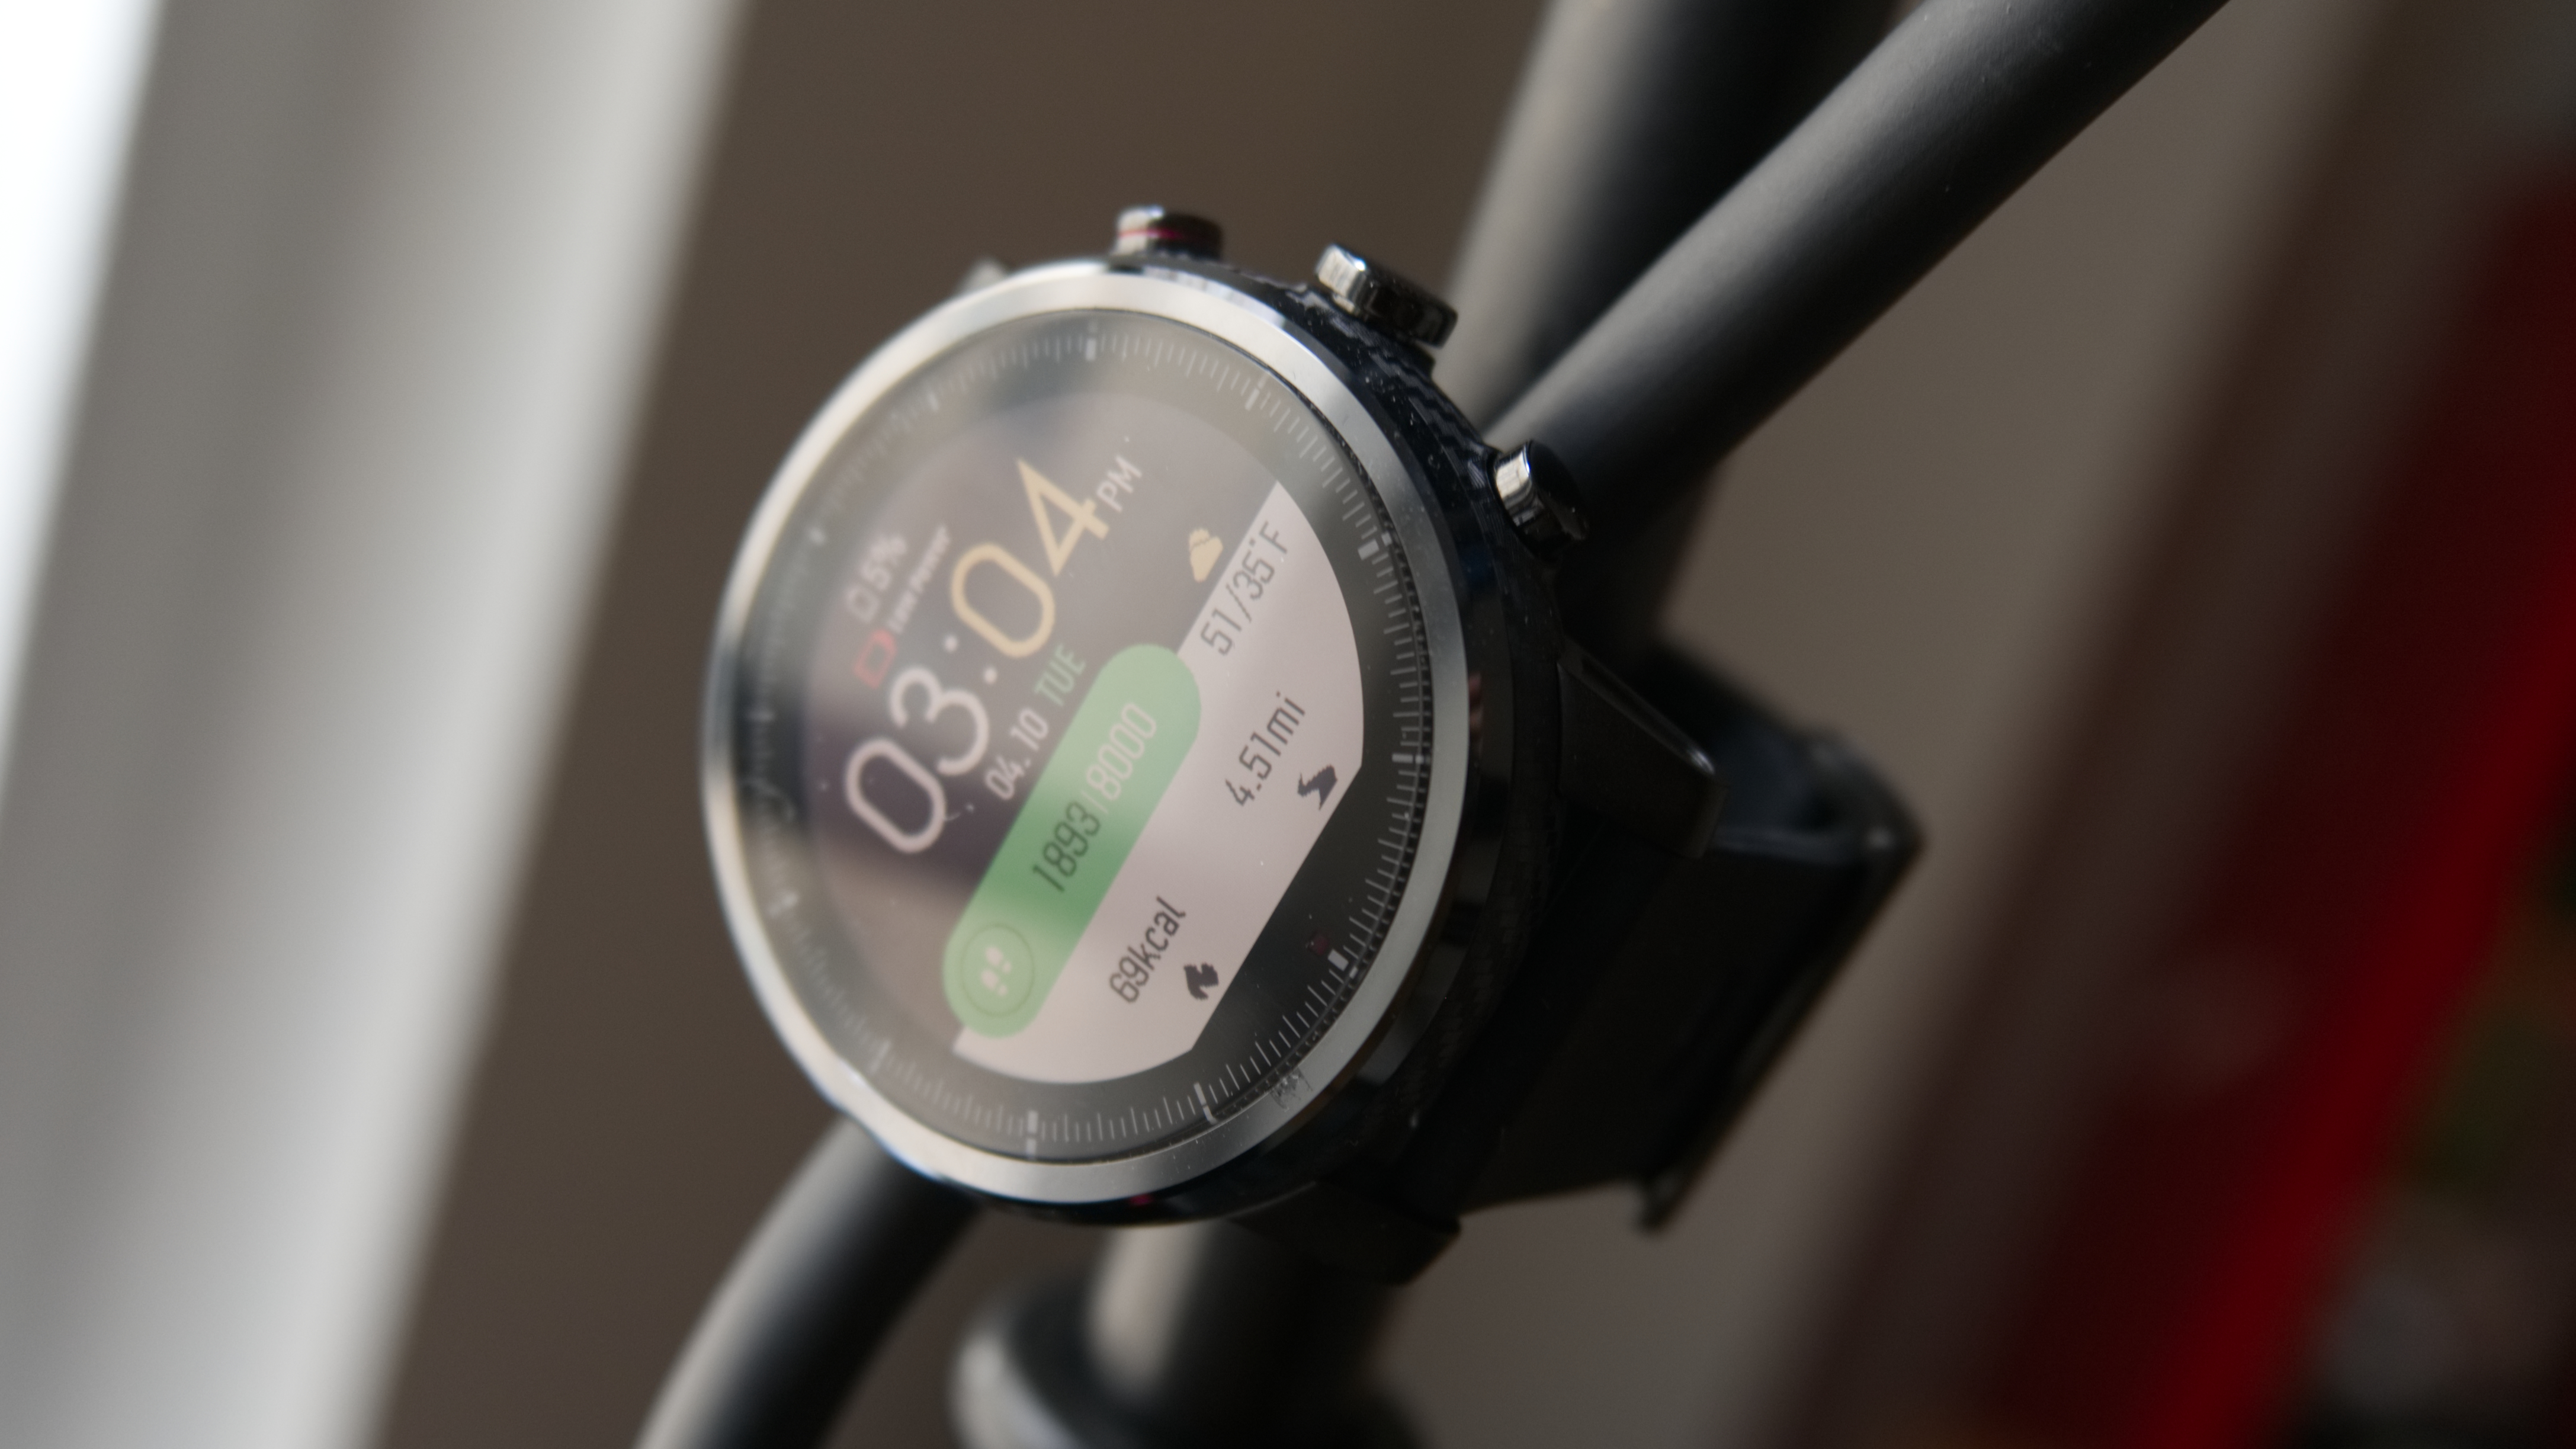 Amazfit Stratos review patibility performance and fitness